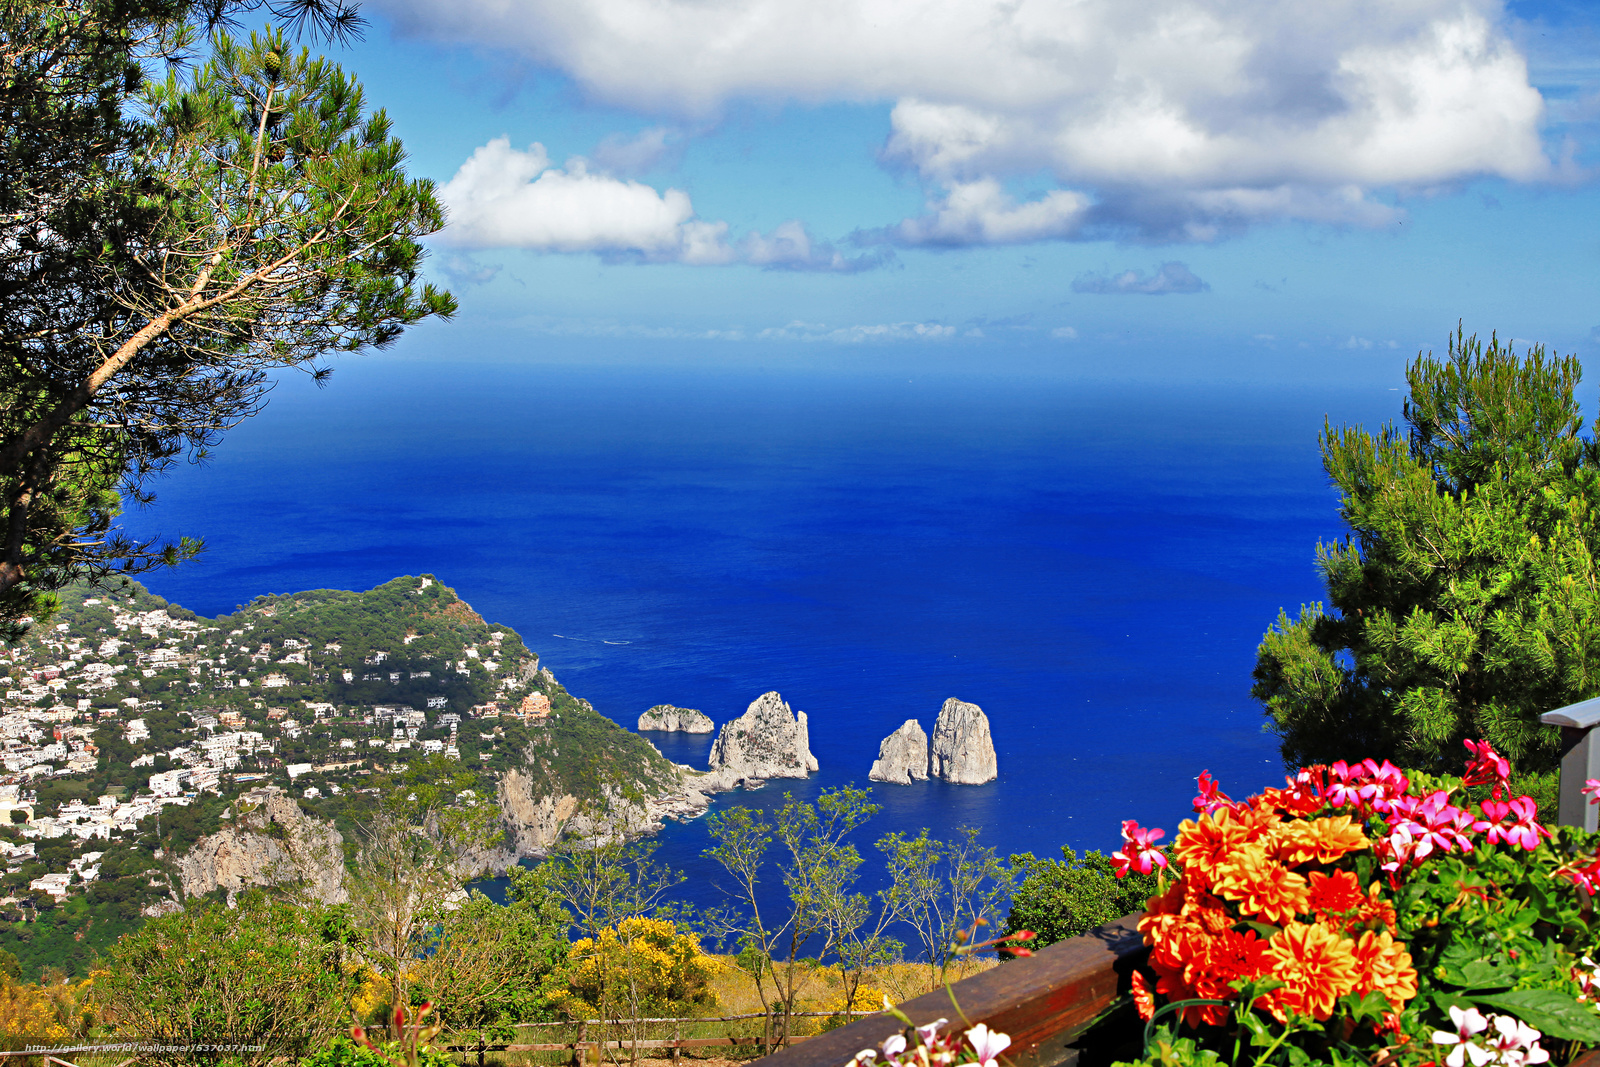 Download wallpaper anacapri capri campania naples free - Naples italy wallpaper ...